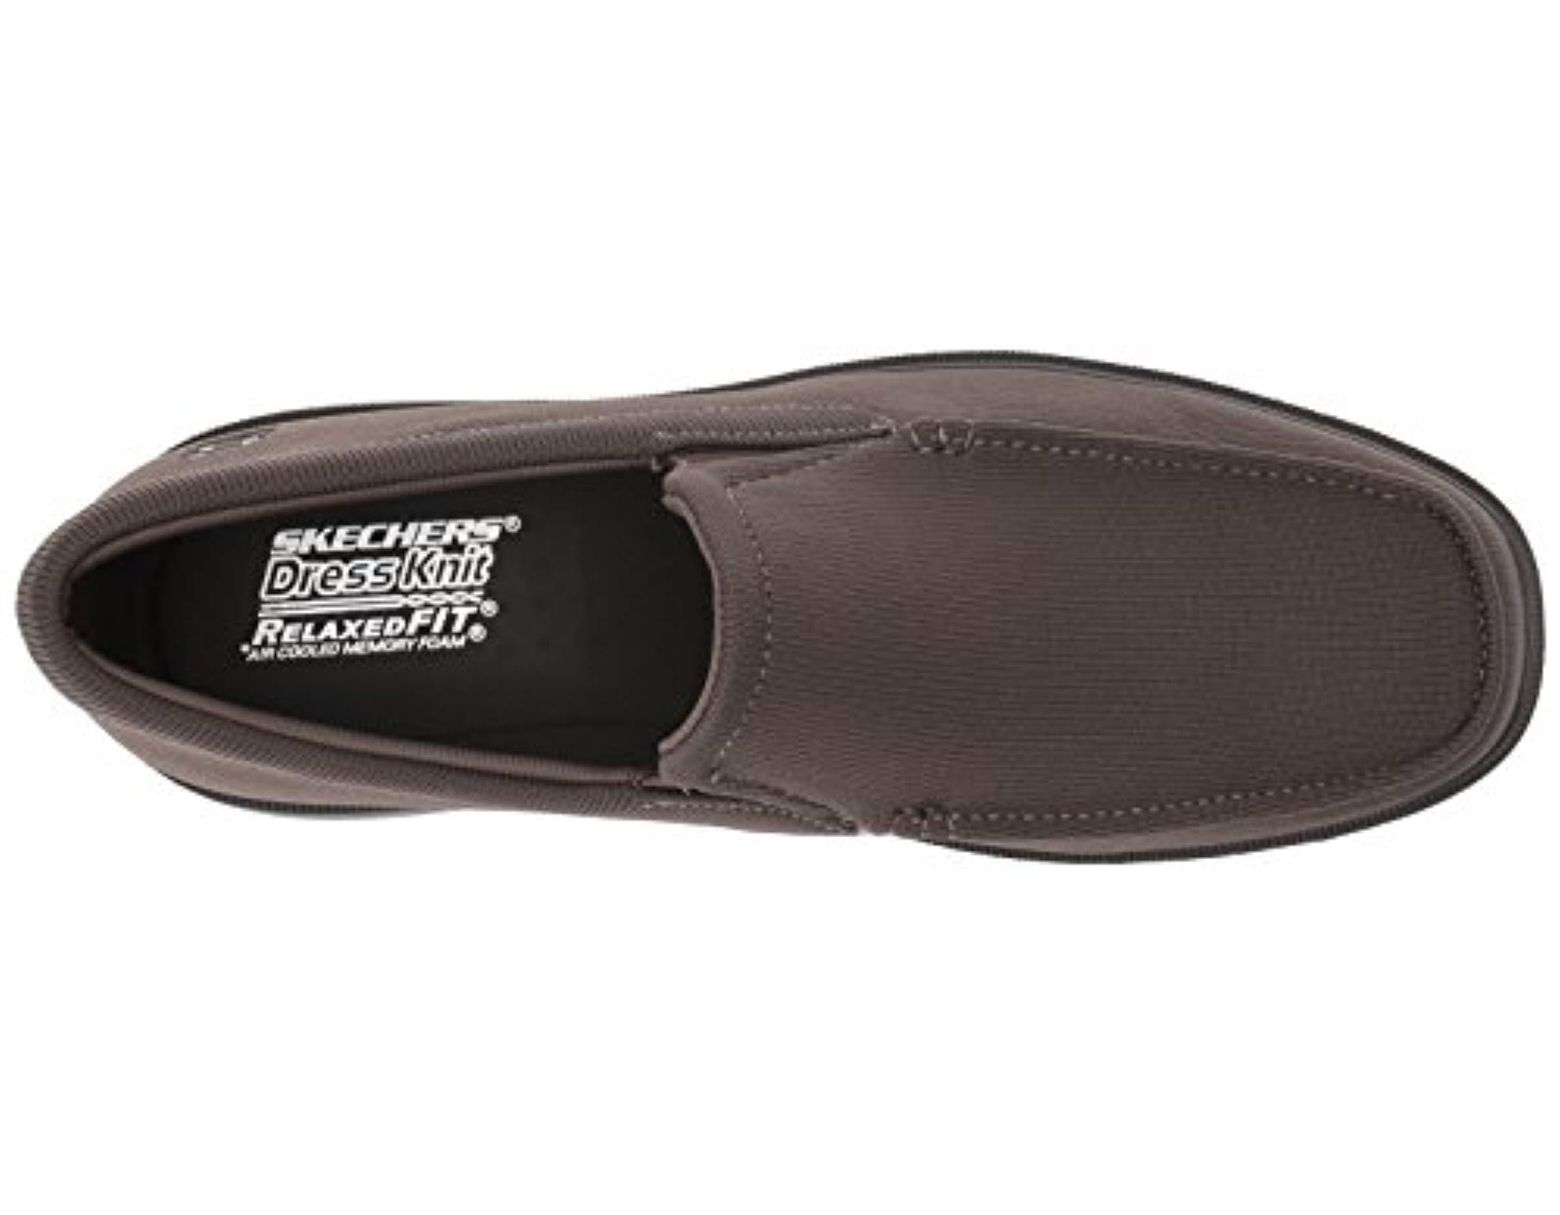 Lyst Skechers Relaxed Fit®: Caswell in Black for Men